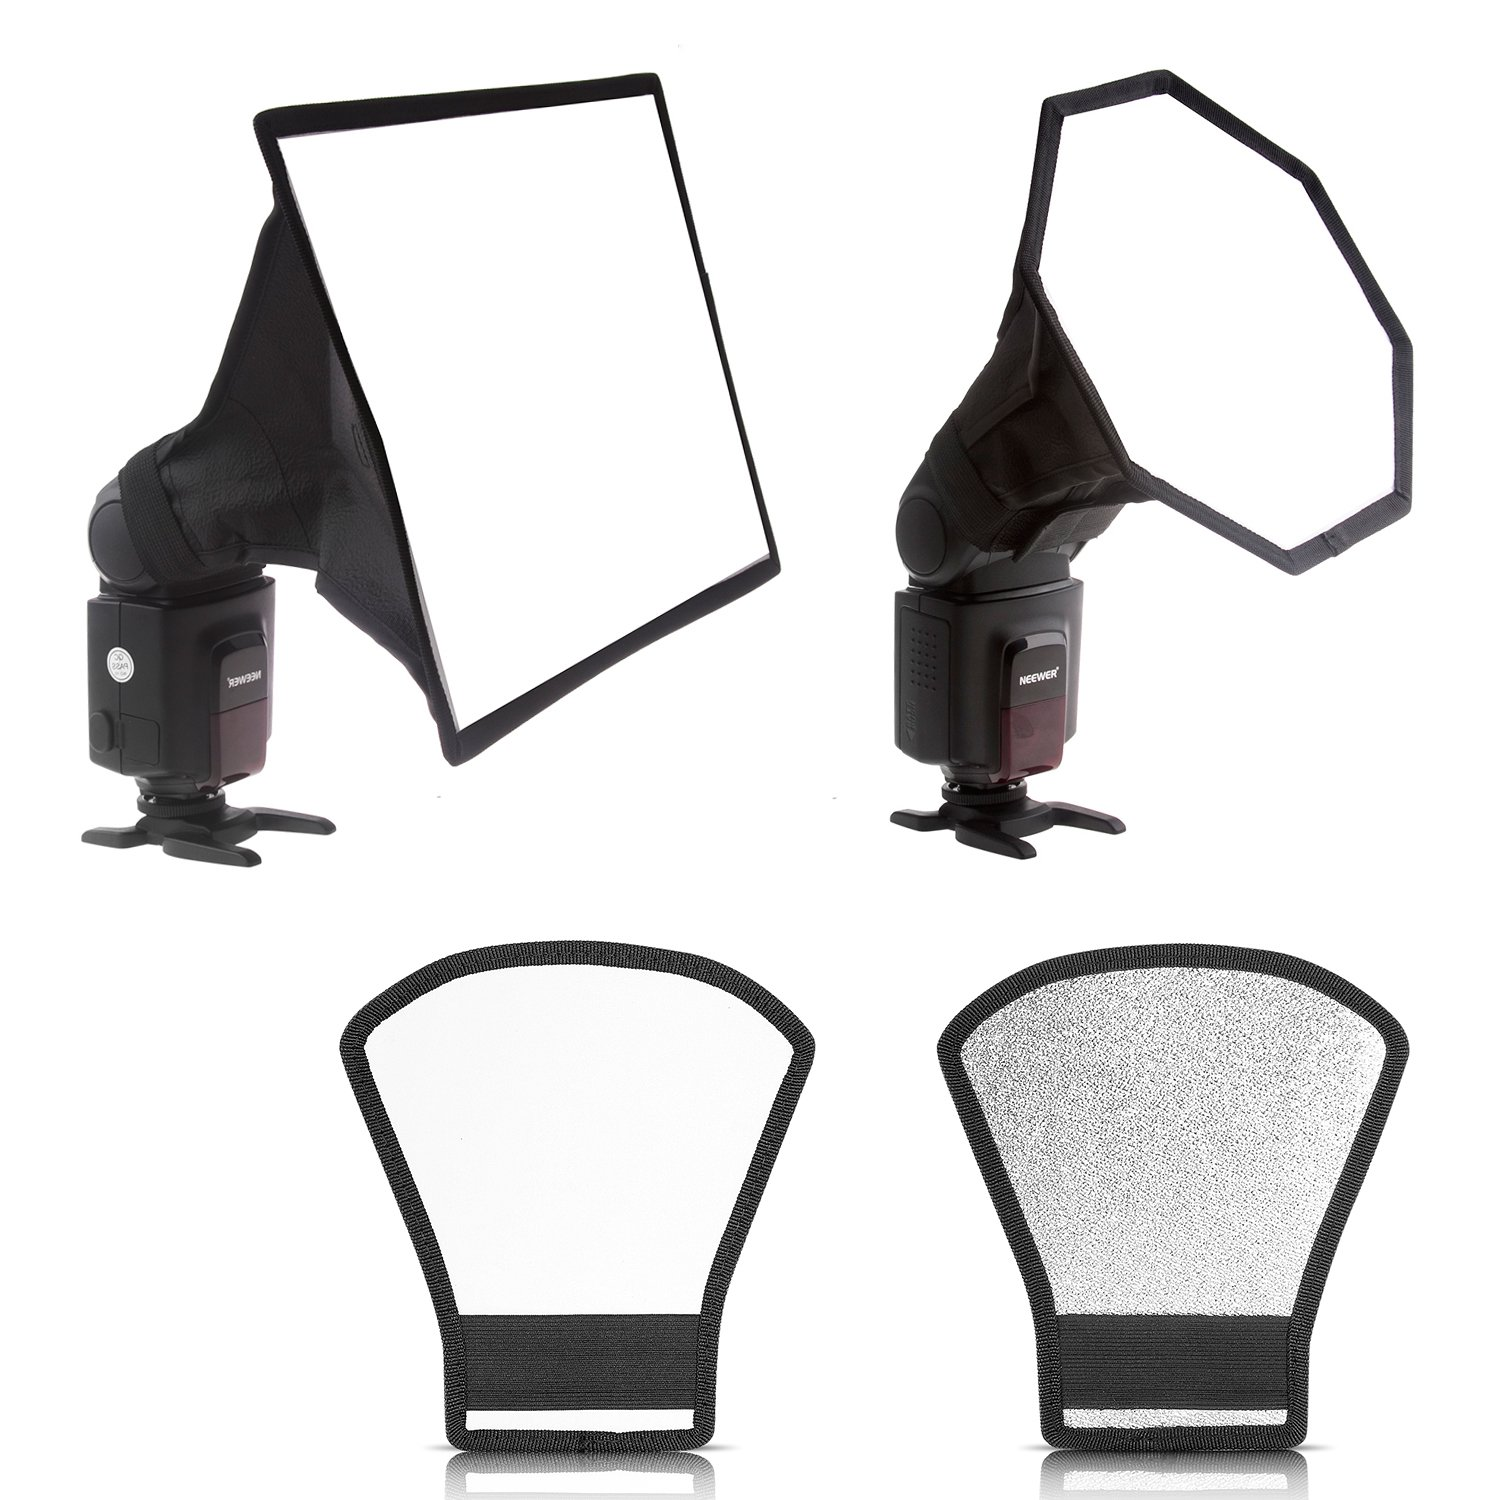 Neewer 8'' x 12''/20 x 30cm Square Softbox,8'' x 8''/20x20cm Octagon Softbox and Two-sides Silver/White Reflector for Canon 430EX II,580EX II,600EX-RT,Nikon SB600 SB800 SB900,Neewer TT520,TT560 by Neewer